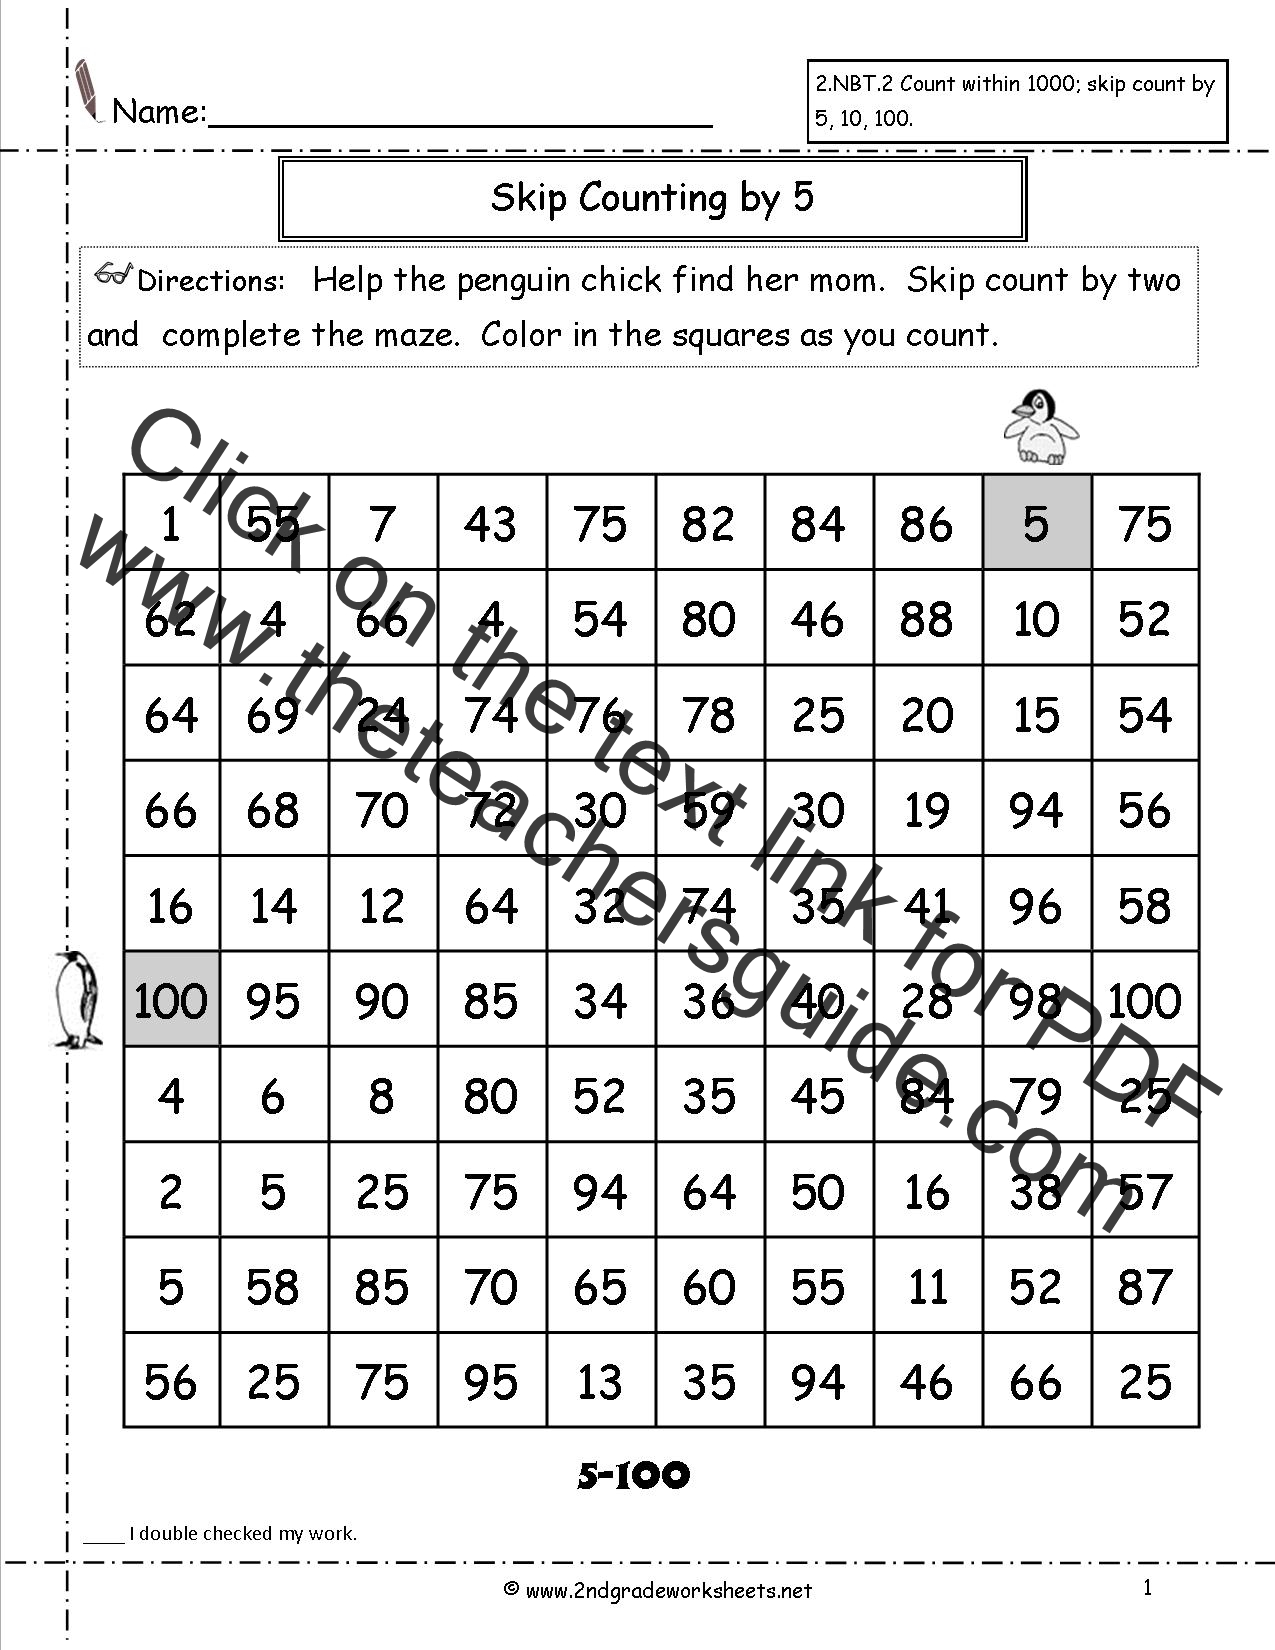 Worksheets Counting By 10 Worksheet free skip counting worksheets by 5 maze